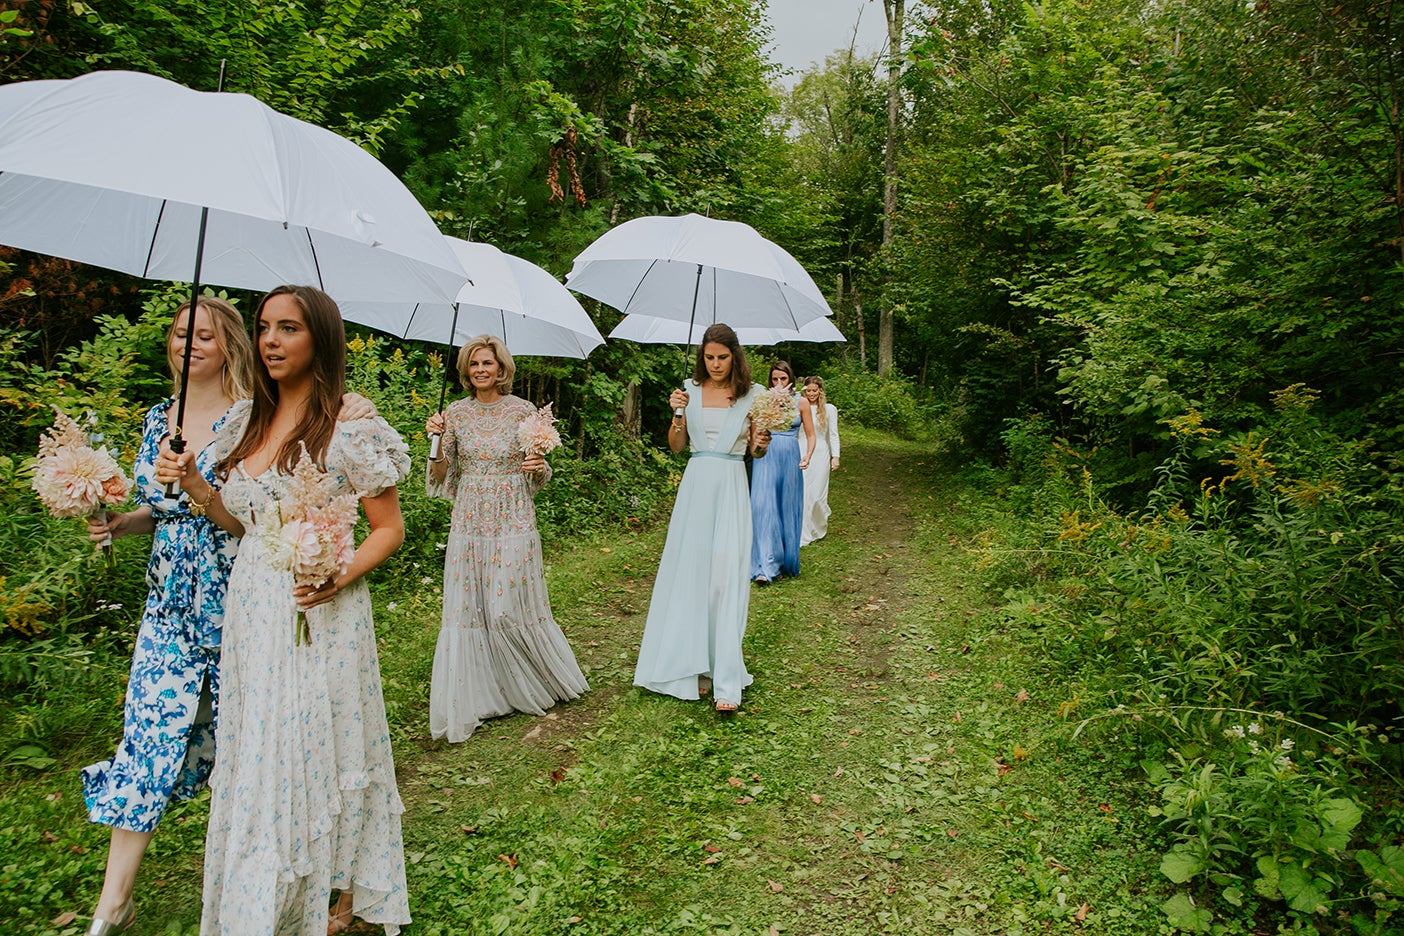 Wedding guests with umbrellas